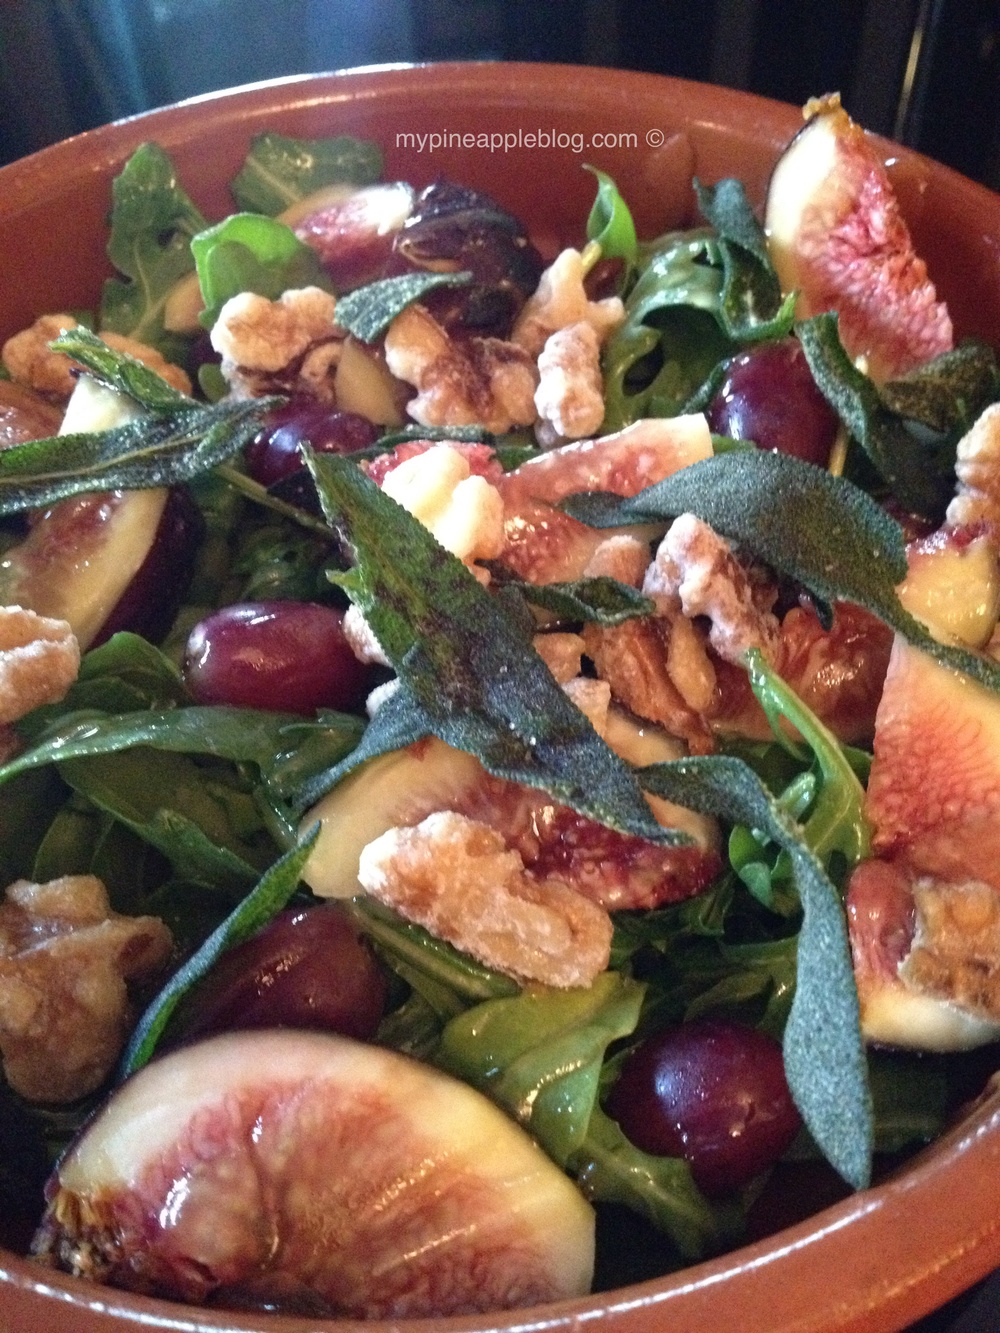 The luscious fig and walnut salad